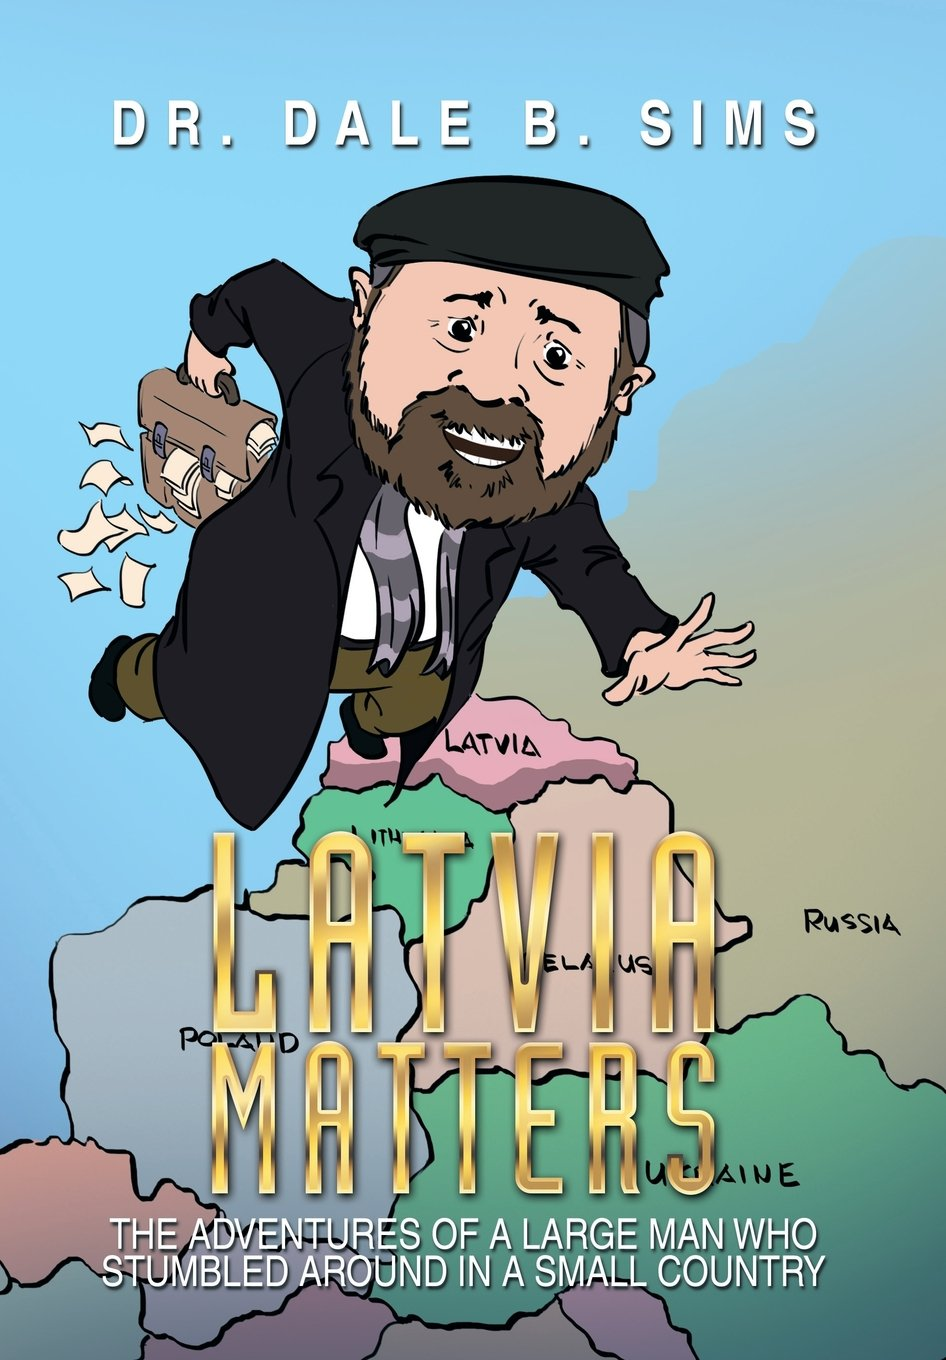 Latvia Matters: The Adventures of a Large Man Who Stumbled Around in a Small Country Hardcover – May 21, 2014 Dr Dale B. Sims Xlibris 149900737X Dale B - Travel - Latvia